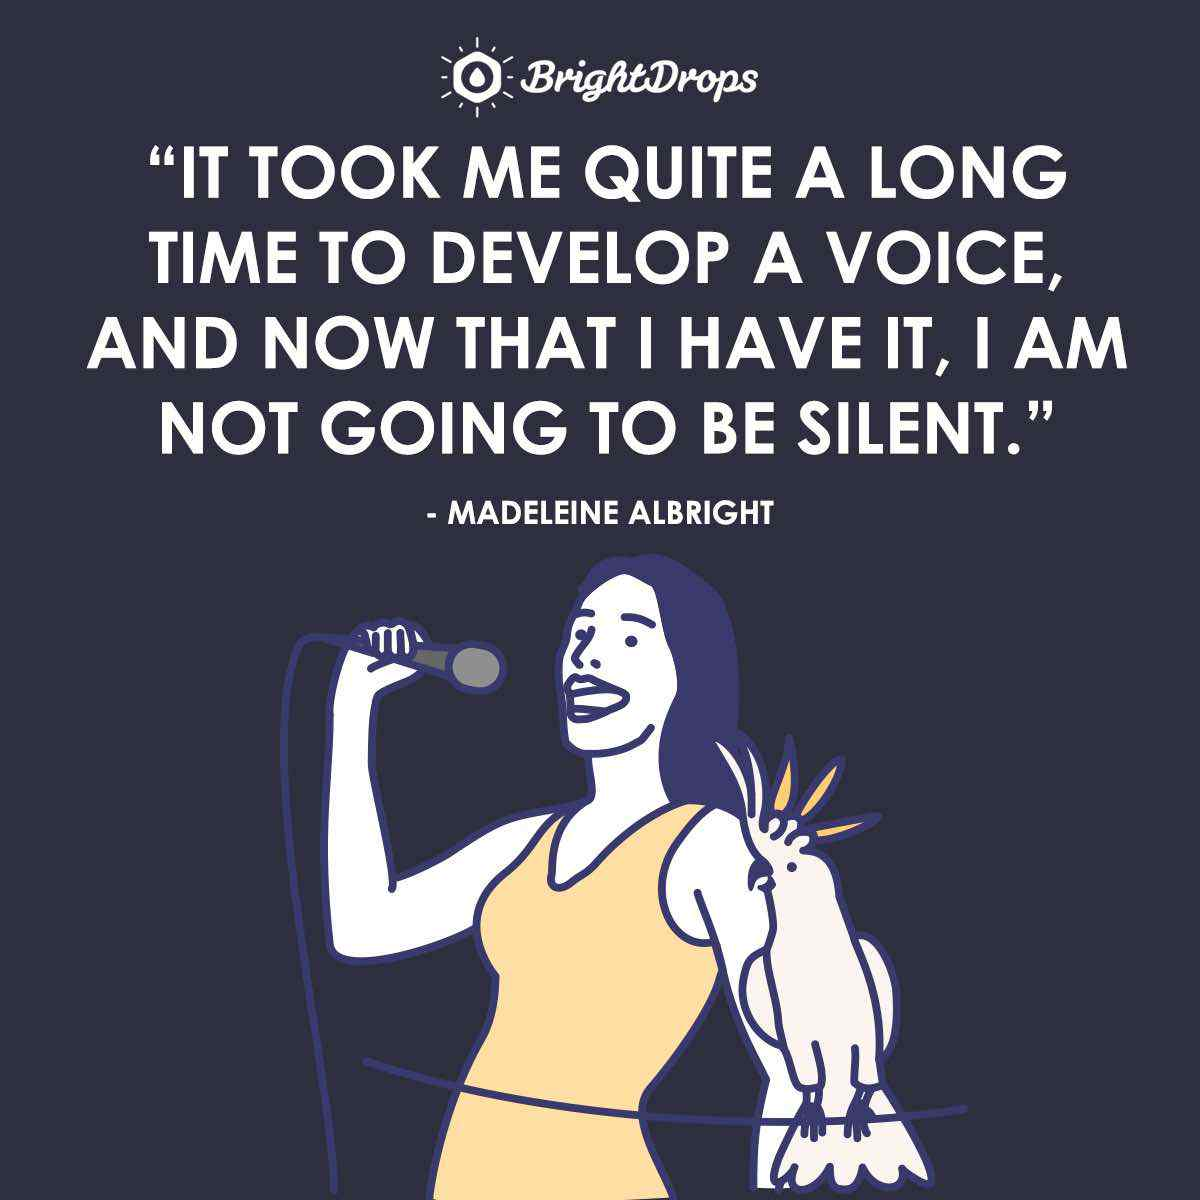 """It took me quite a long time to develop a voice, and now that I have it, I am not going to be silent."" ~ Madeleine Albrigh"